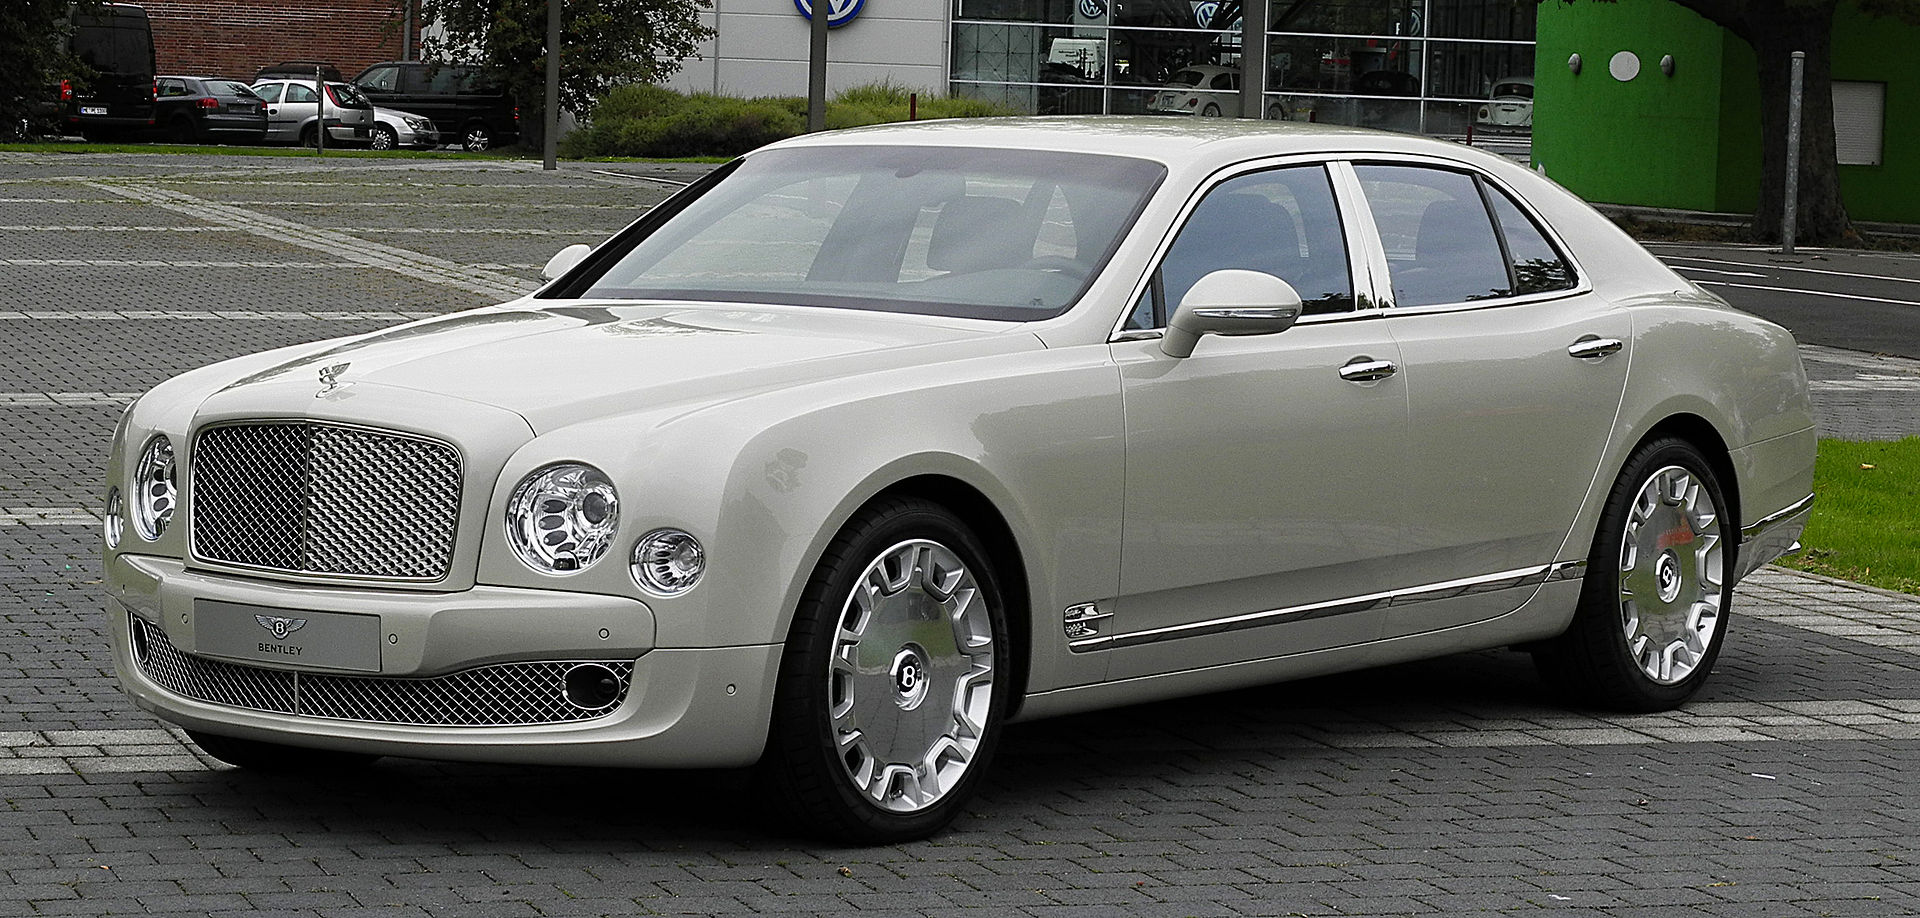 Bentley mulsanne 2010 wikipedia for The bentley